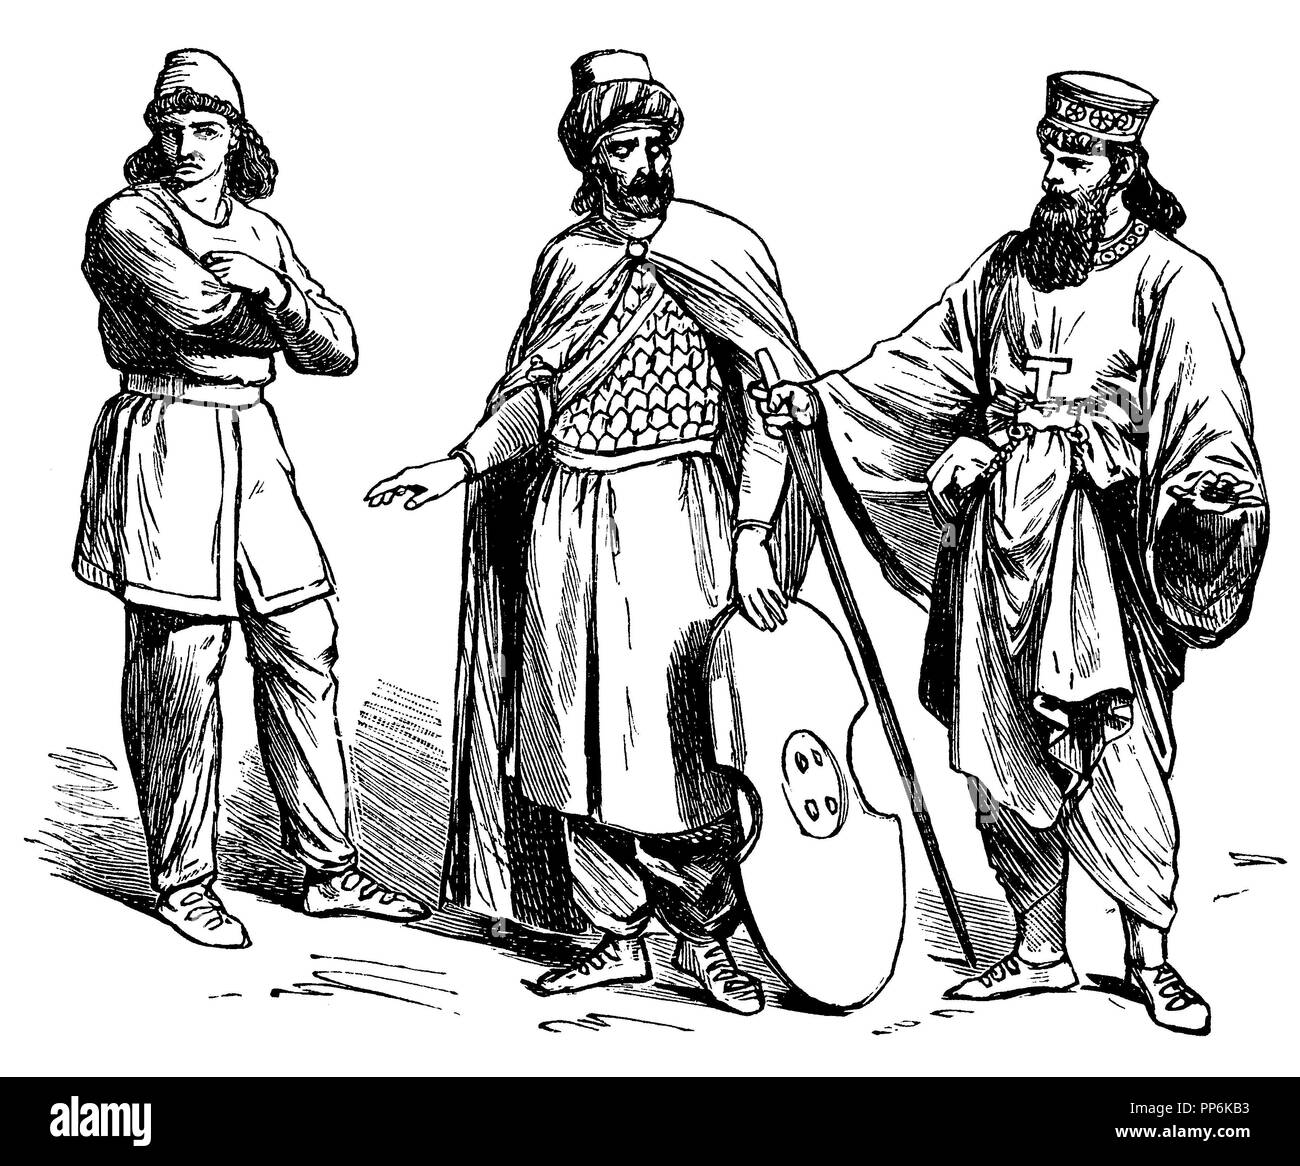 left: Persian, middle: Persian warrior, right: Noble Meder in the Kandys, anonym  1896 - Stock Image